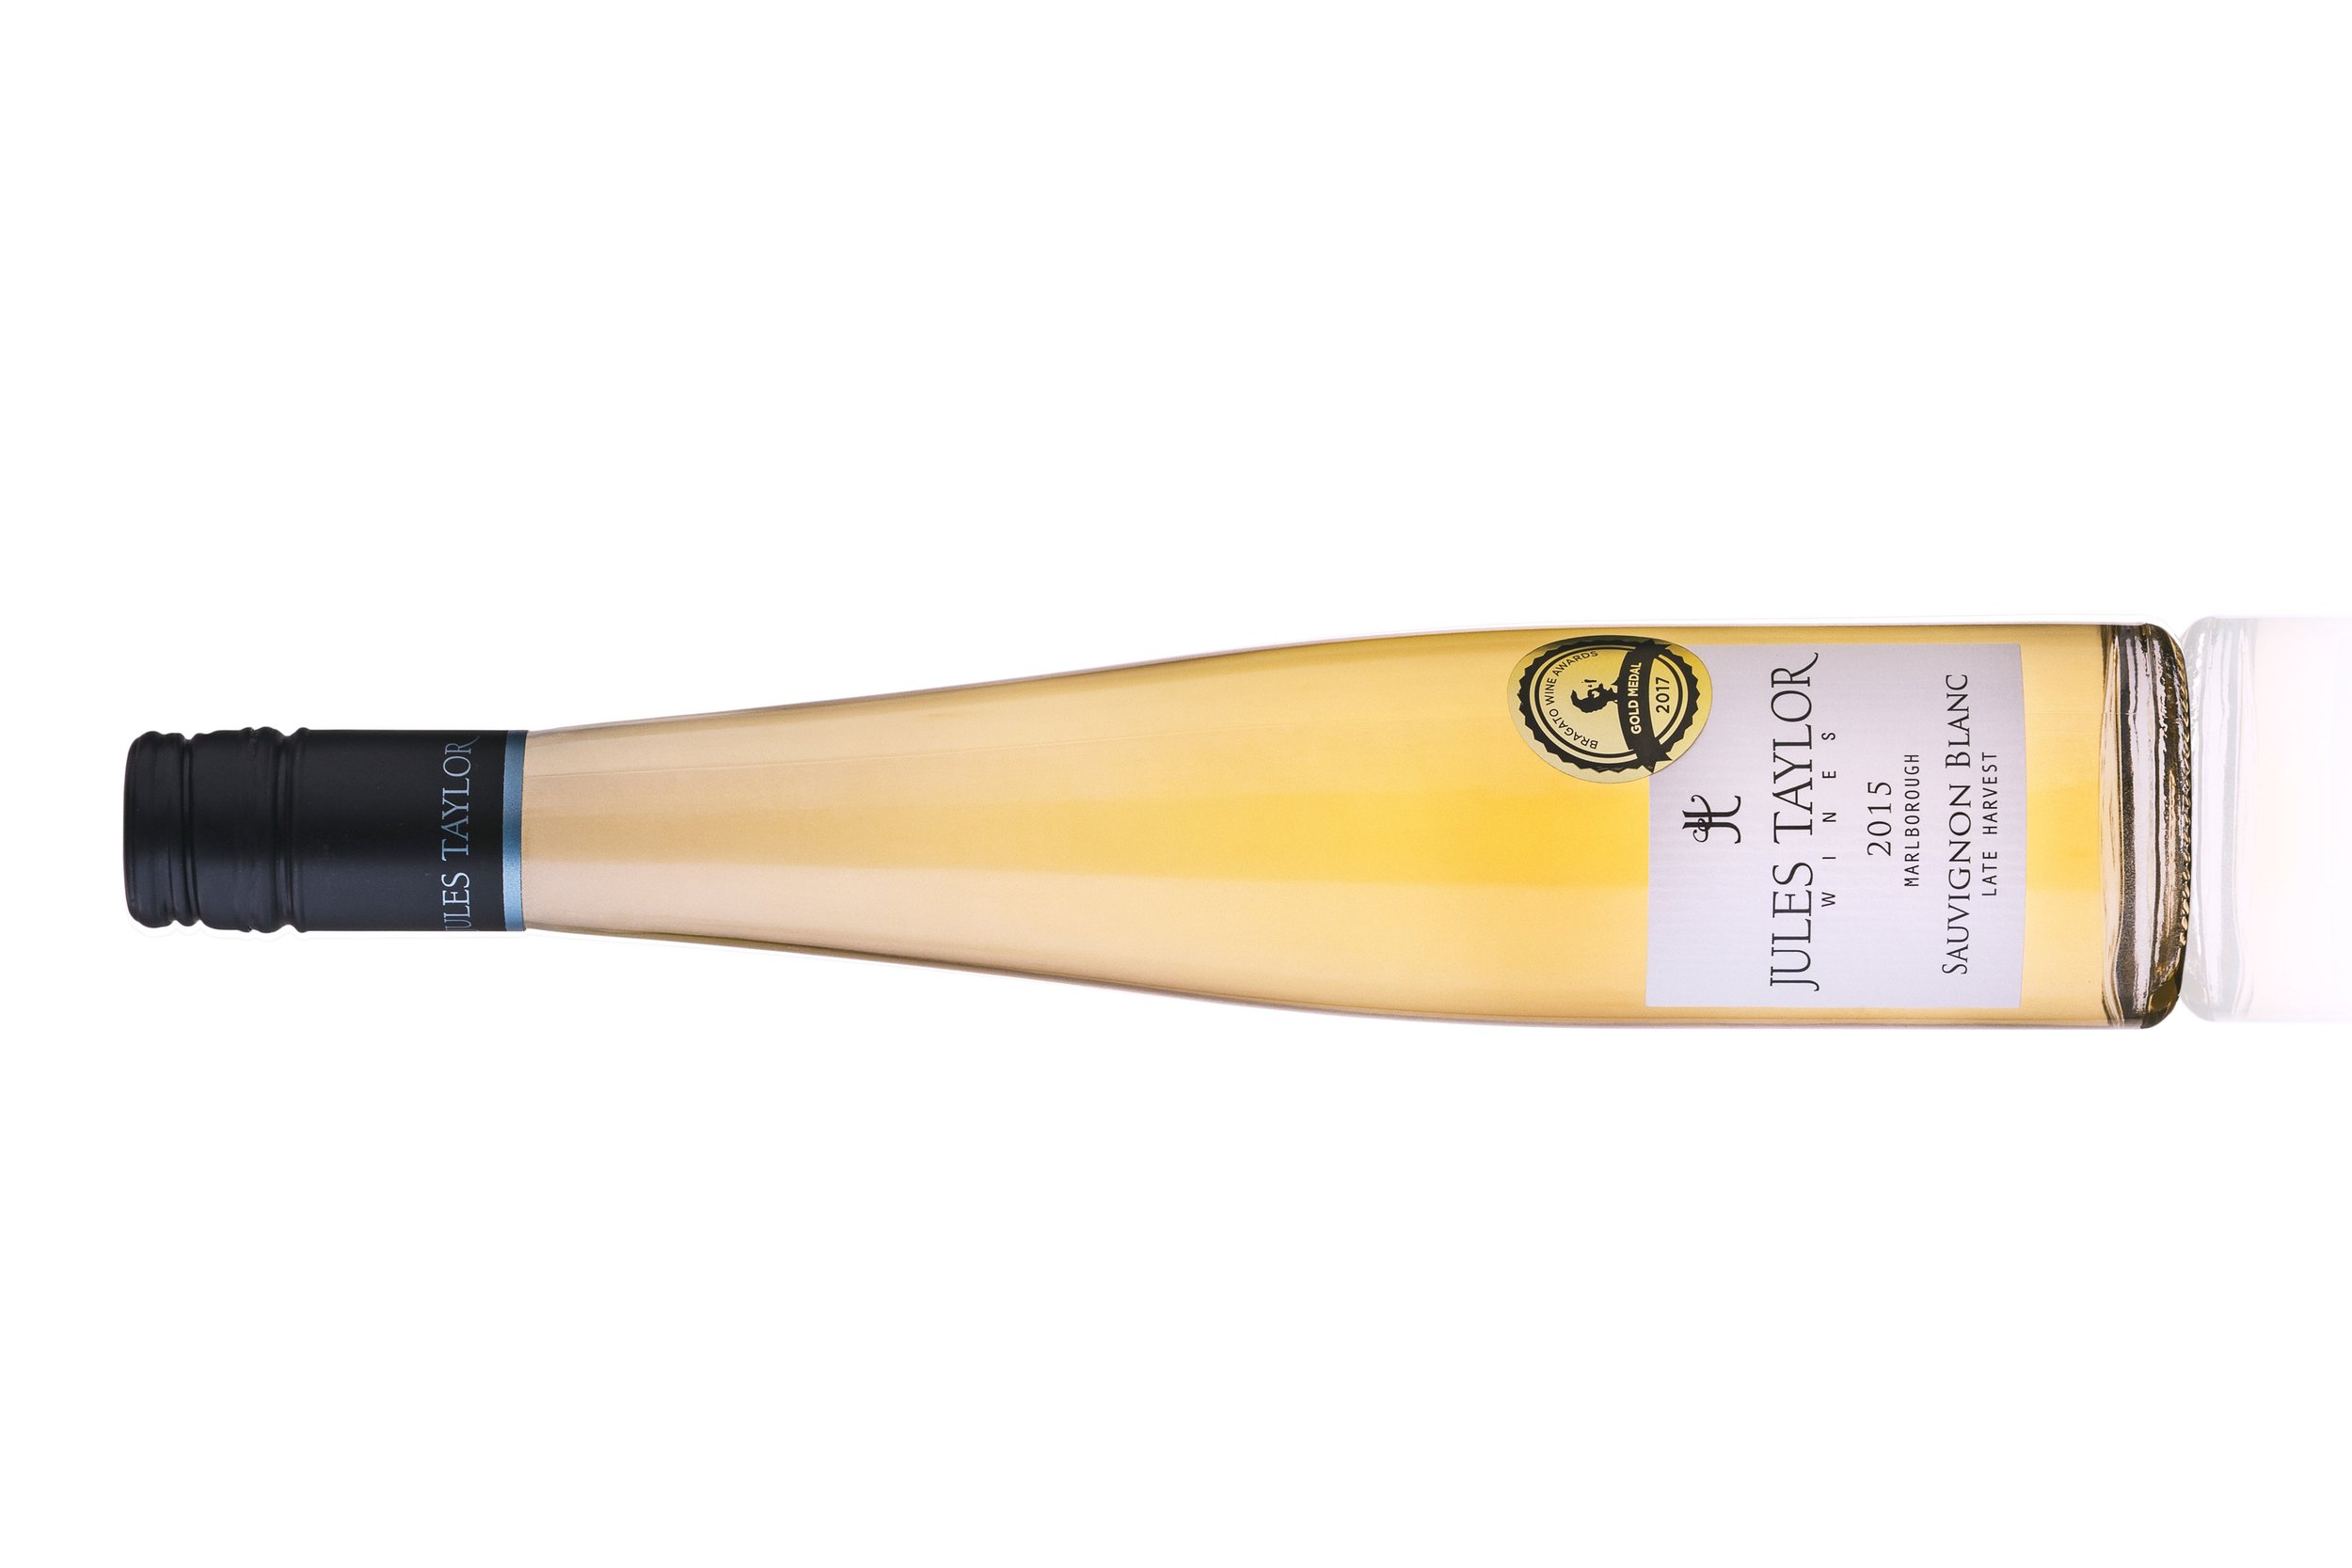 JULES TAYLOR WINES LATE HARVEST SAUVIGNON BLANC | ジュルズ ティラー レイト ハーベスト ソーヴィヨン ブラン   マールボロワイラウヴァレー ¥3,980, 2015, 375ml, 12%, BC 91 RS. 223 g/L pH. 4.13TA. 7.69 g/L, 4 Medals, Hand Picked, selected yeast strains   James Suckling 92 point s  A sweet yet tangy array of limes and mangoes with a fresh and vibrant finish. Very focused. The nice acid cut delivers a balanced and tasty wine perfect for spicy Asians soups and of course a dessert of two.  ジューシーでフレッシュ、活気に満ちた、魅惑的なハニーフルーツのブーケ - 半熟のマルメロと洋梨、甘いレモンとリンゴ、ハーブノート、そして蜂蜜。 口当たりには、 甘く新鮮な、非常にフルーティーでさわやかな酸味。 スパイシーなアジアンスープ、そしてもちろんデザートと完璧なペアリングをかなえる、フルボディで官能的で、バランスの優れた美味しいワインです。     詳しく